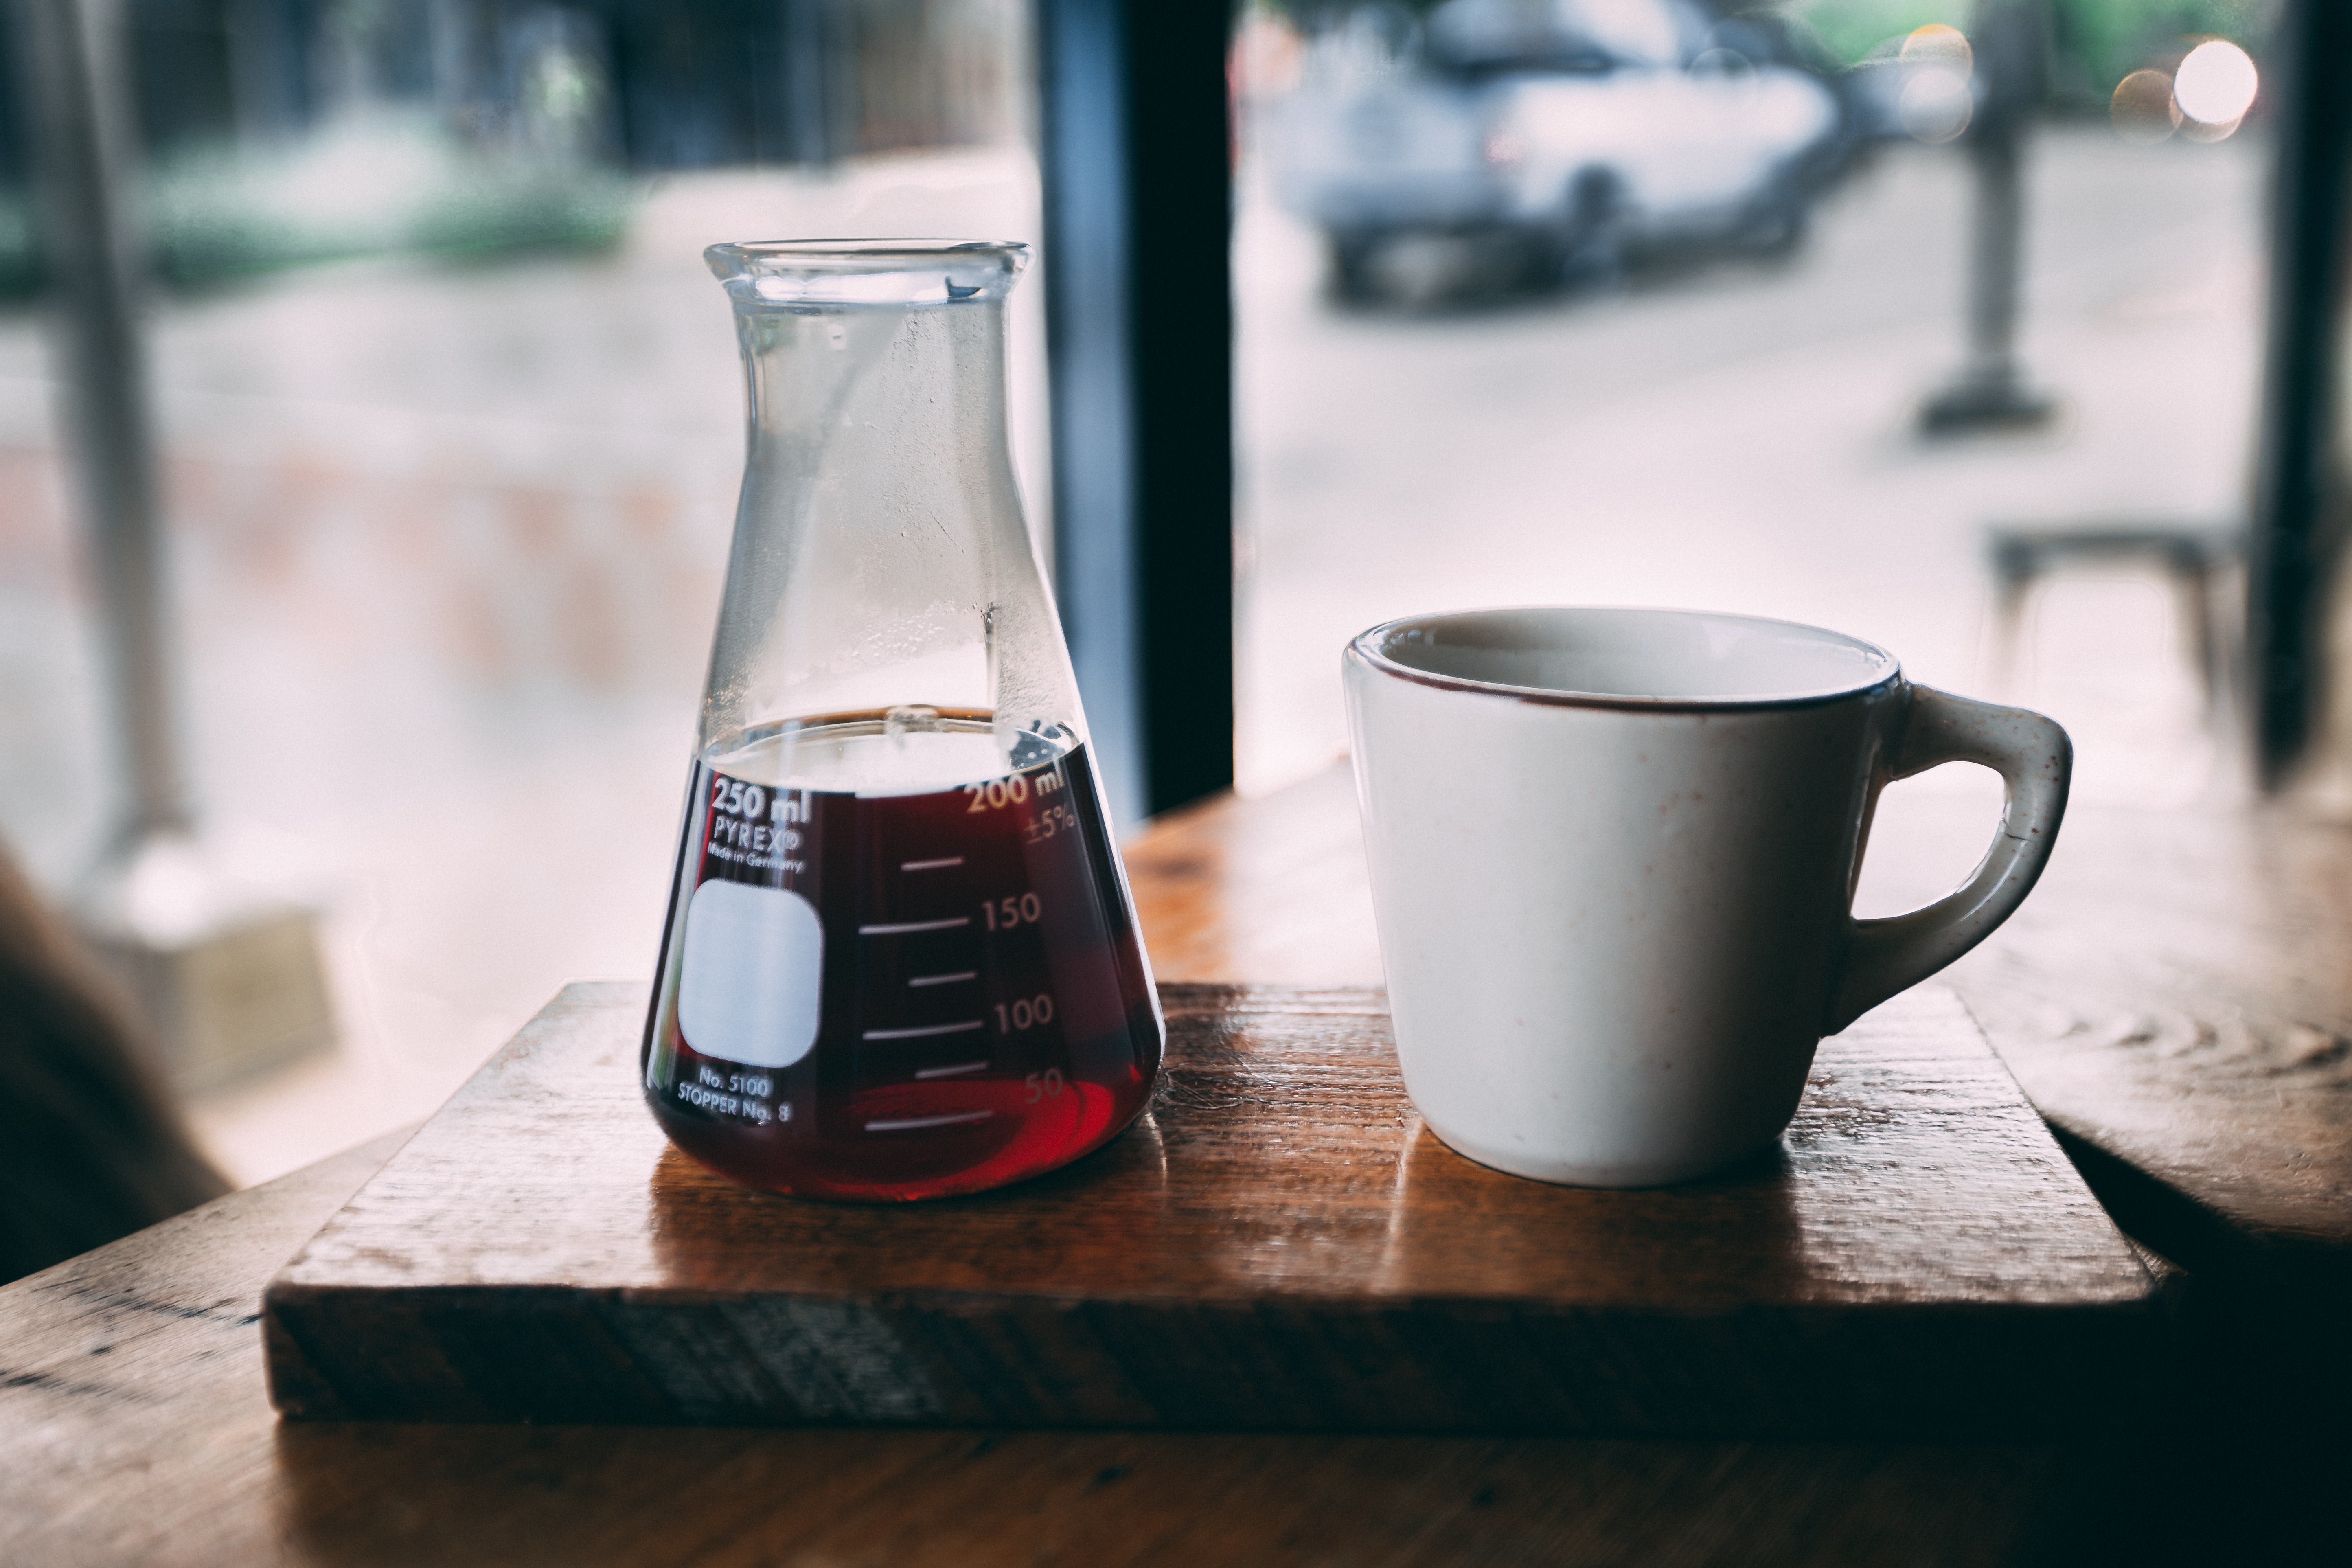 erlenmeyer flask and white ceramic mug on brown wooden table